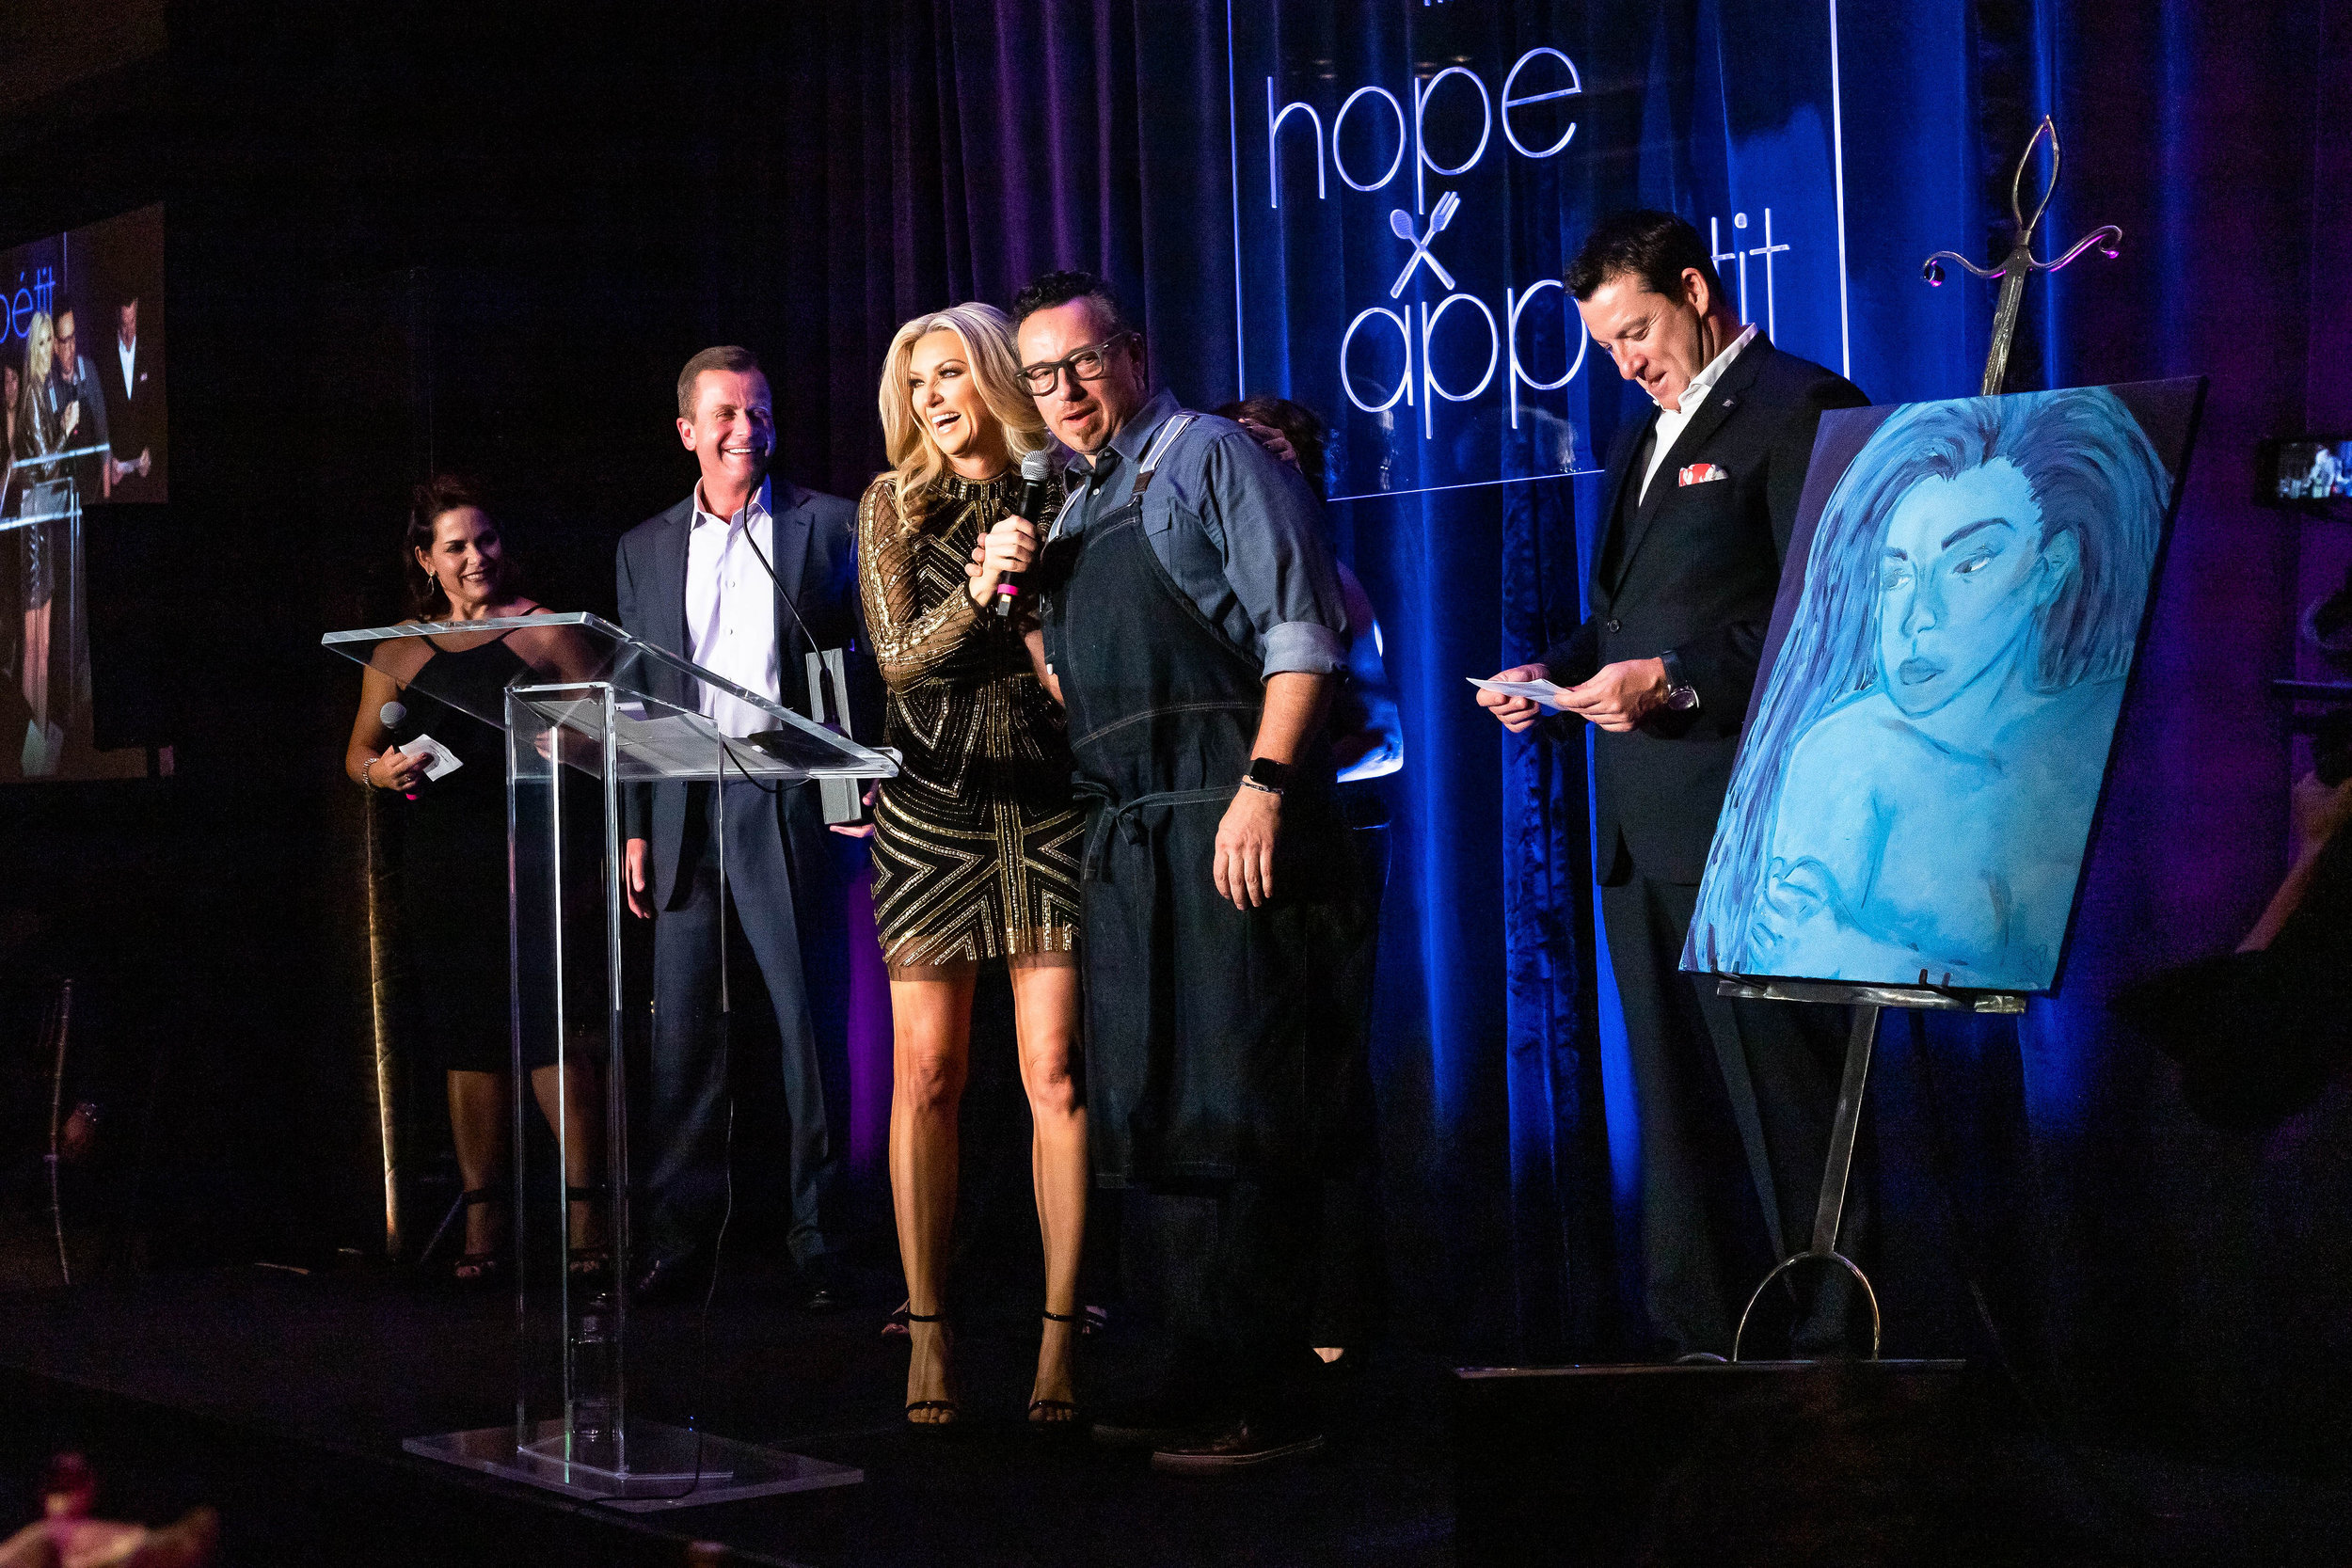 The Hope Appétit 2019 gala was made possible thanks to the generous support of Dirk and Katie Dozier, Margaret and Don Collis, the Bill Taylor Family, and the rest of our sponsors.  Photos by    Brandi Lacey Photography    and   Amy Hicks Photography